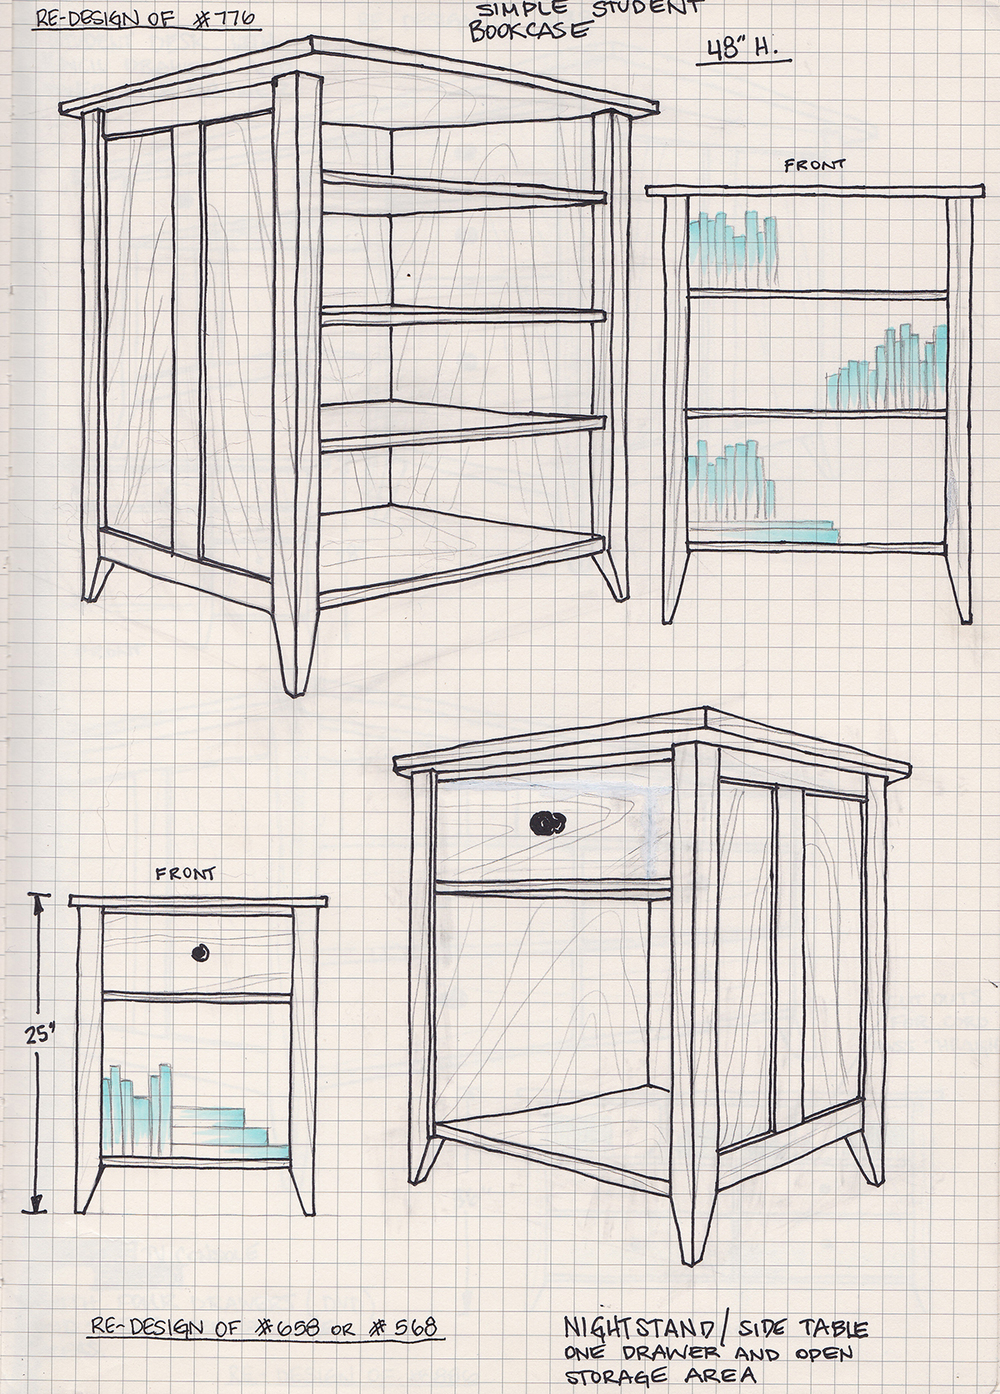 Student Bookcase & Nightstand